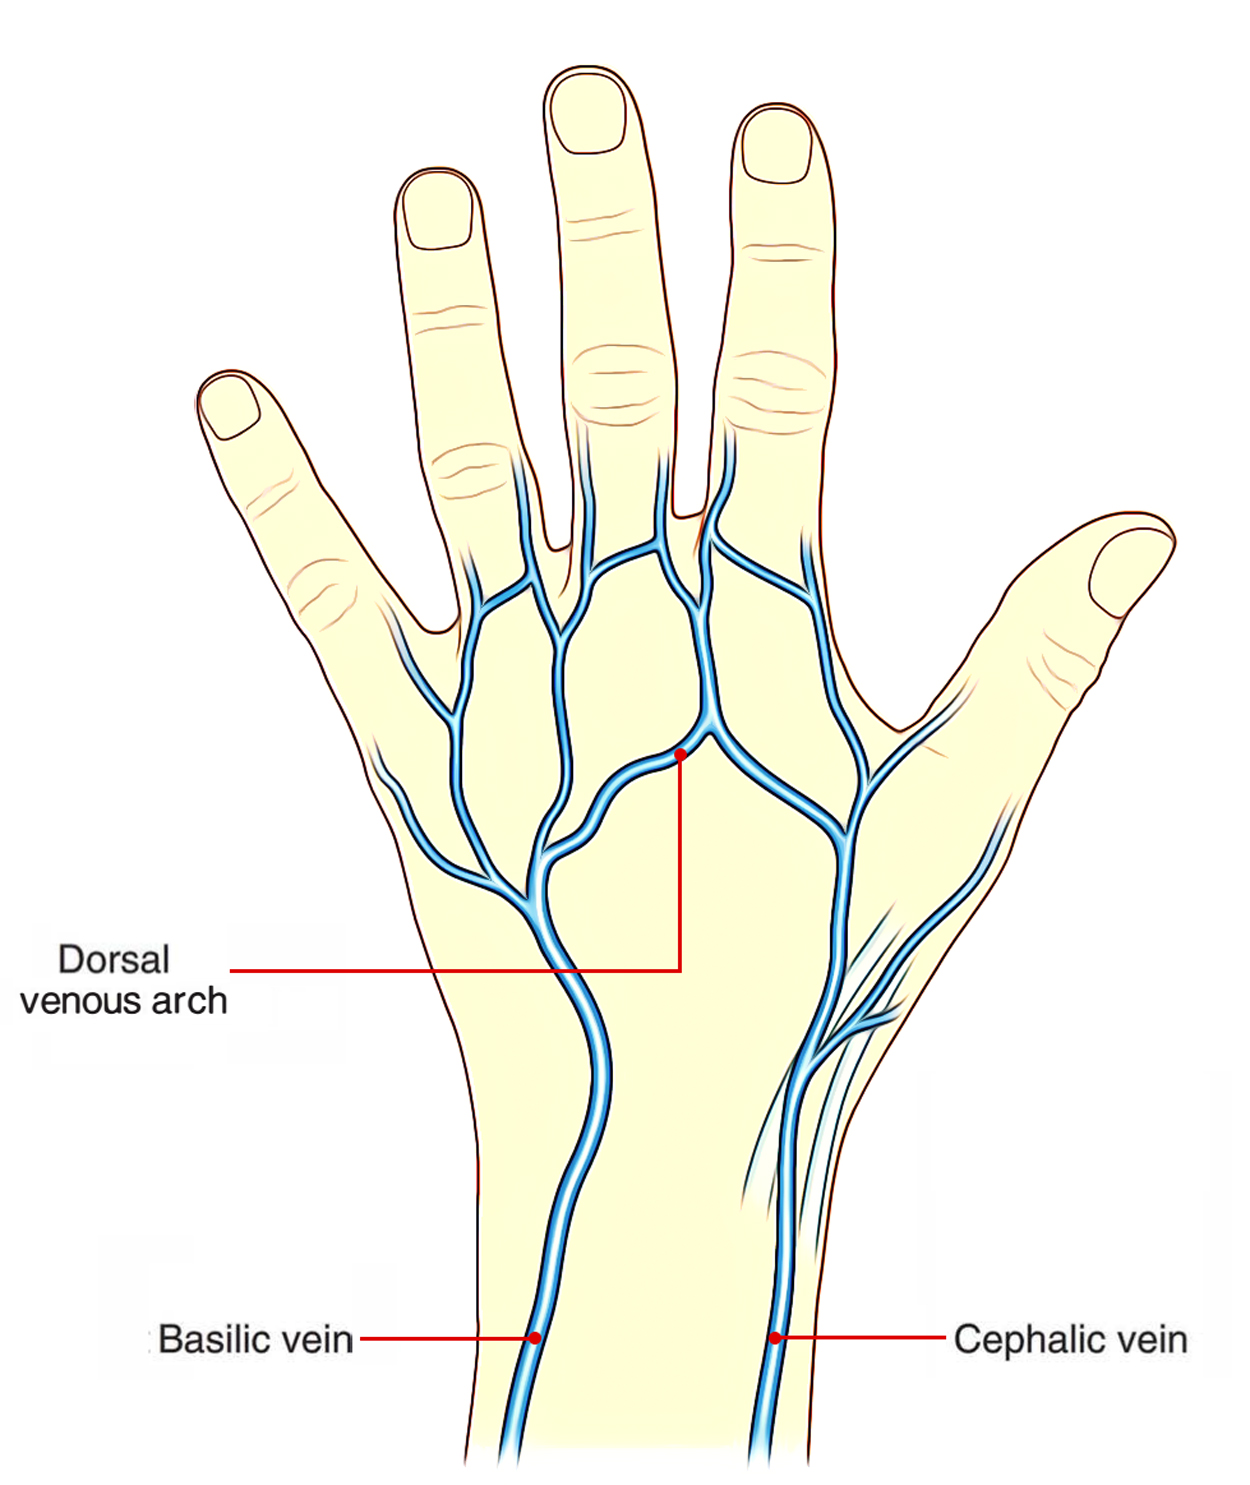 Easy Notes On 【Dorsal Venous Arch】Learn in Just 3 Minutes!